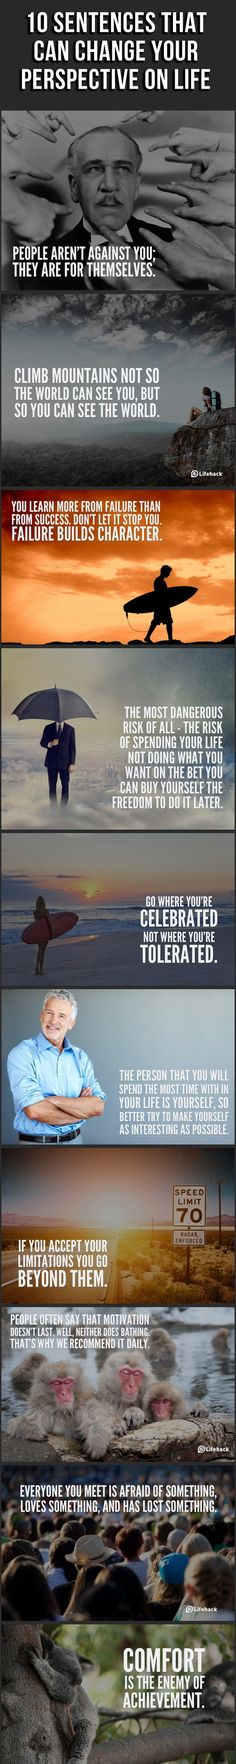 10 Sentences that Can Change Your Life